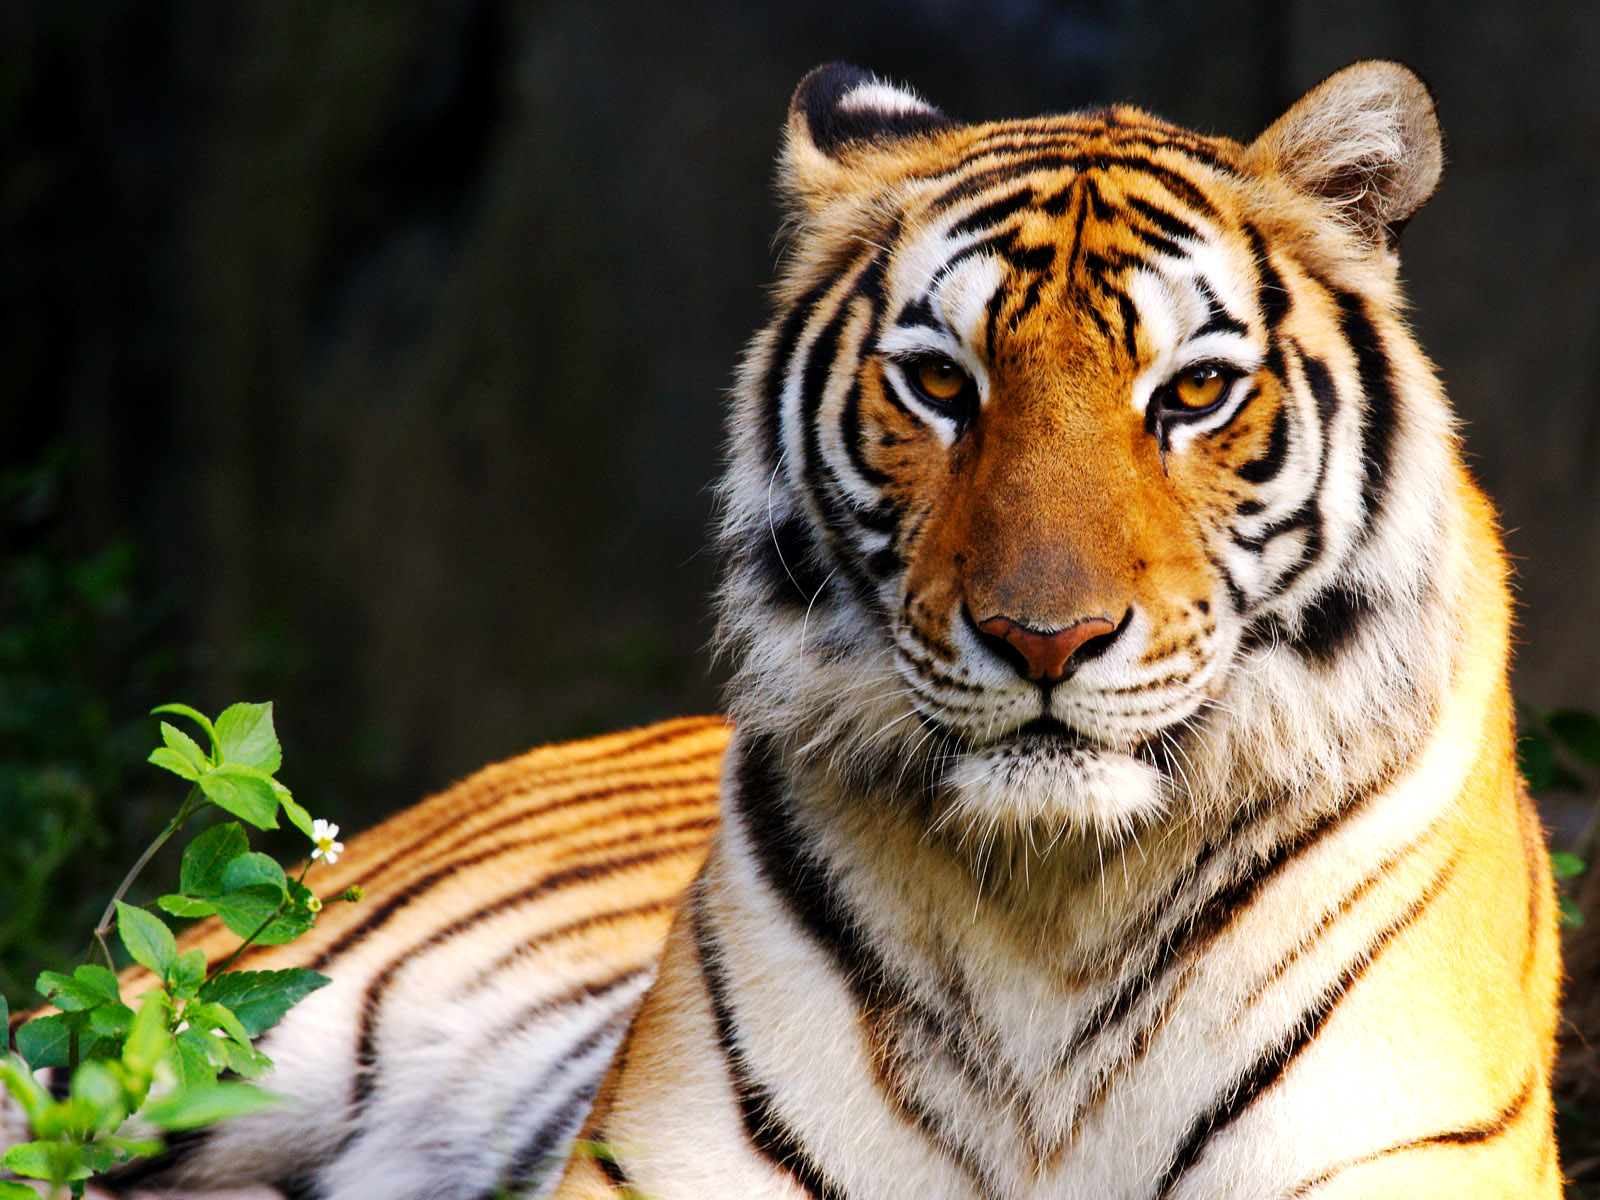 Colors of Nature Tigers HD Wallpapers Download Wallpapers in HD 1600x1200